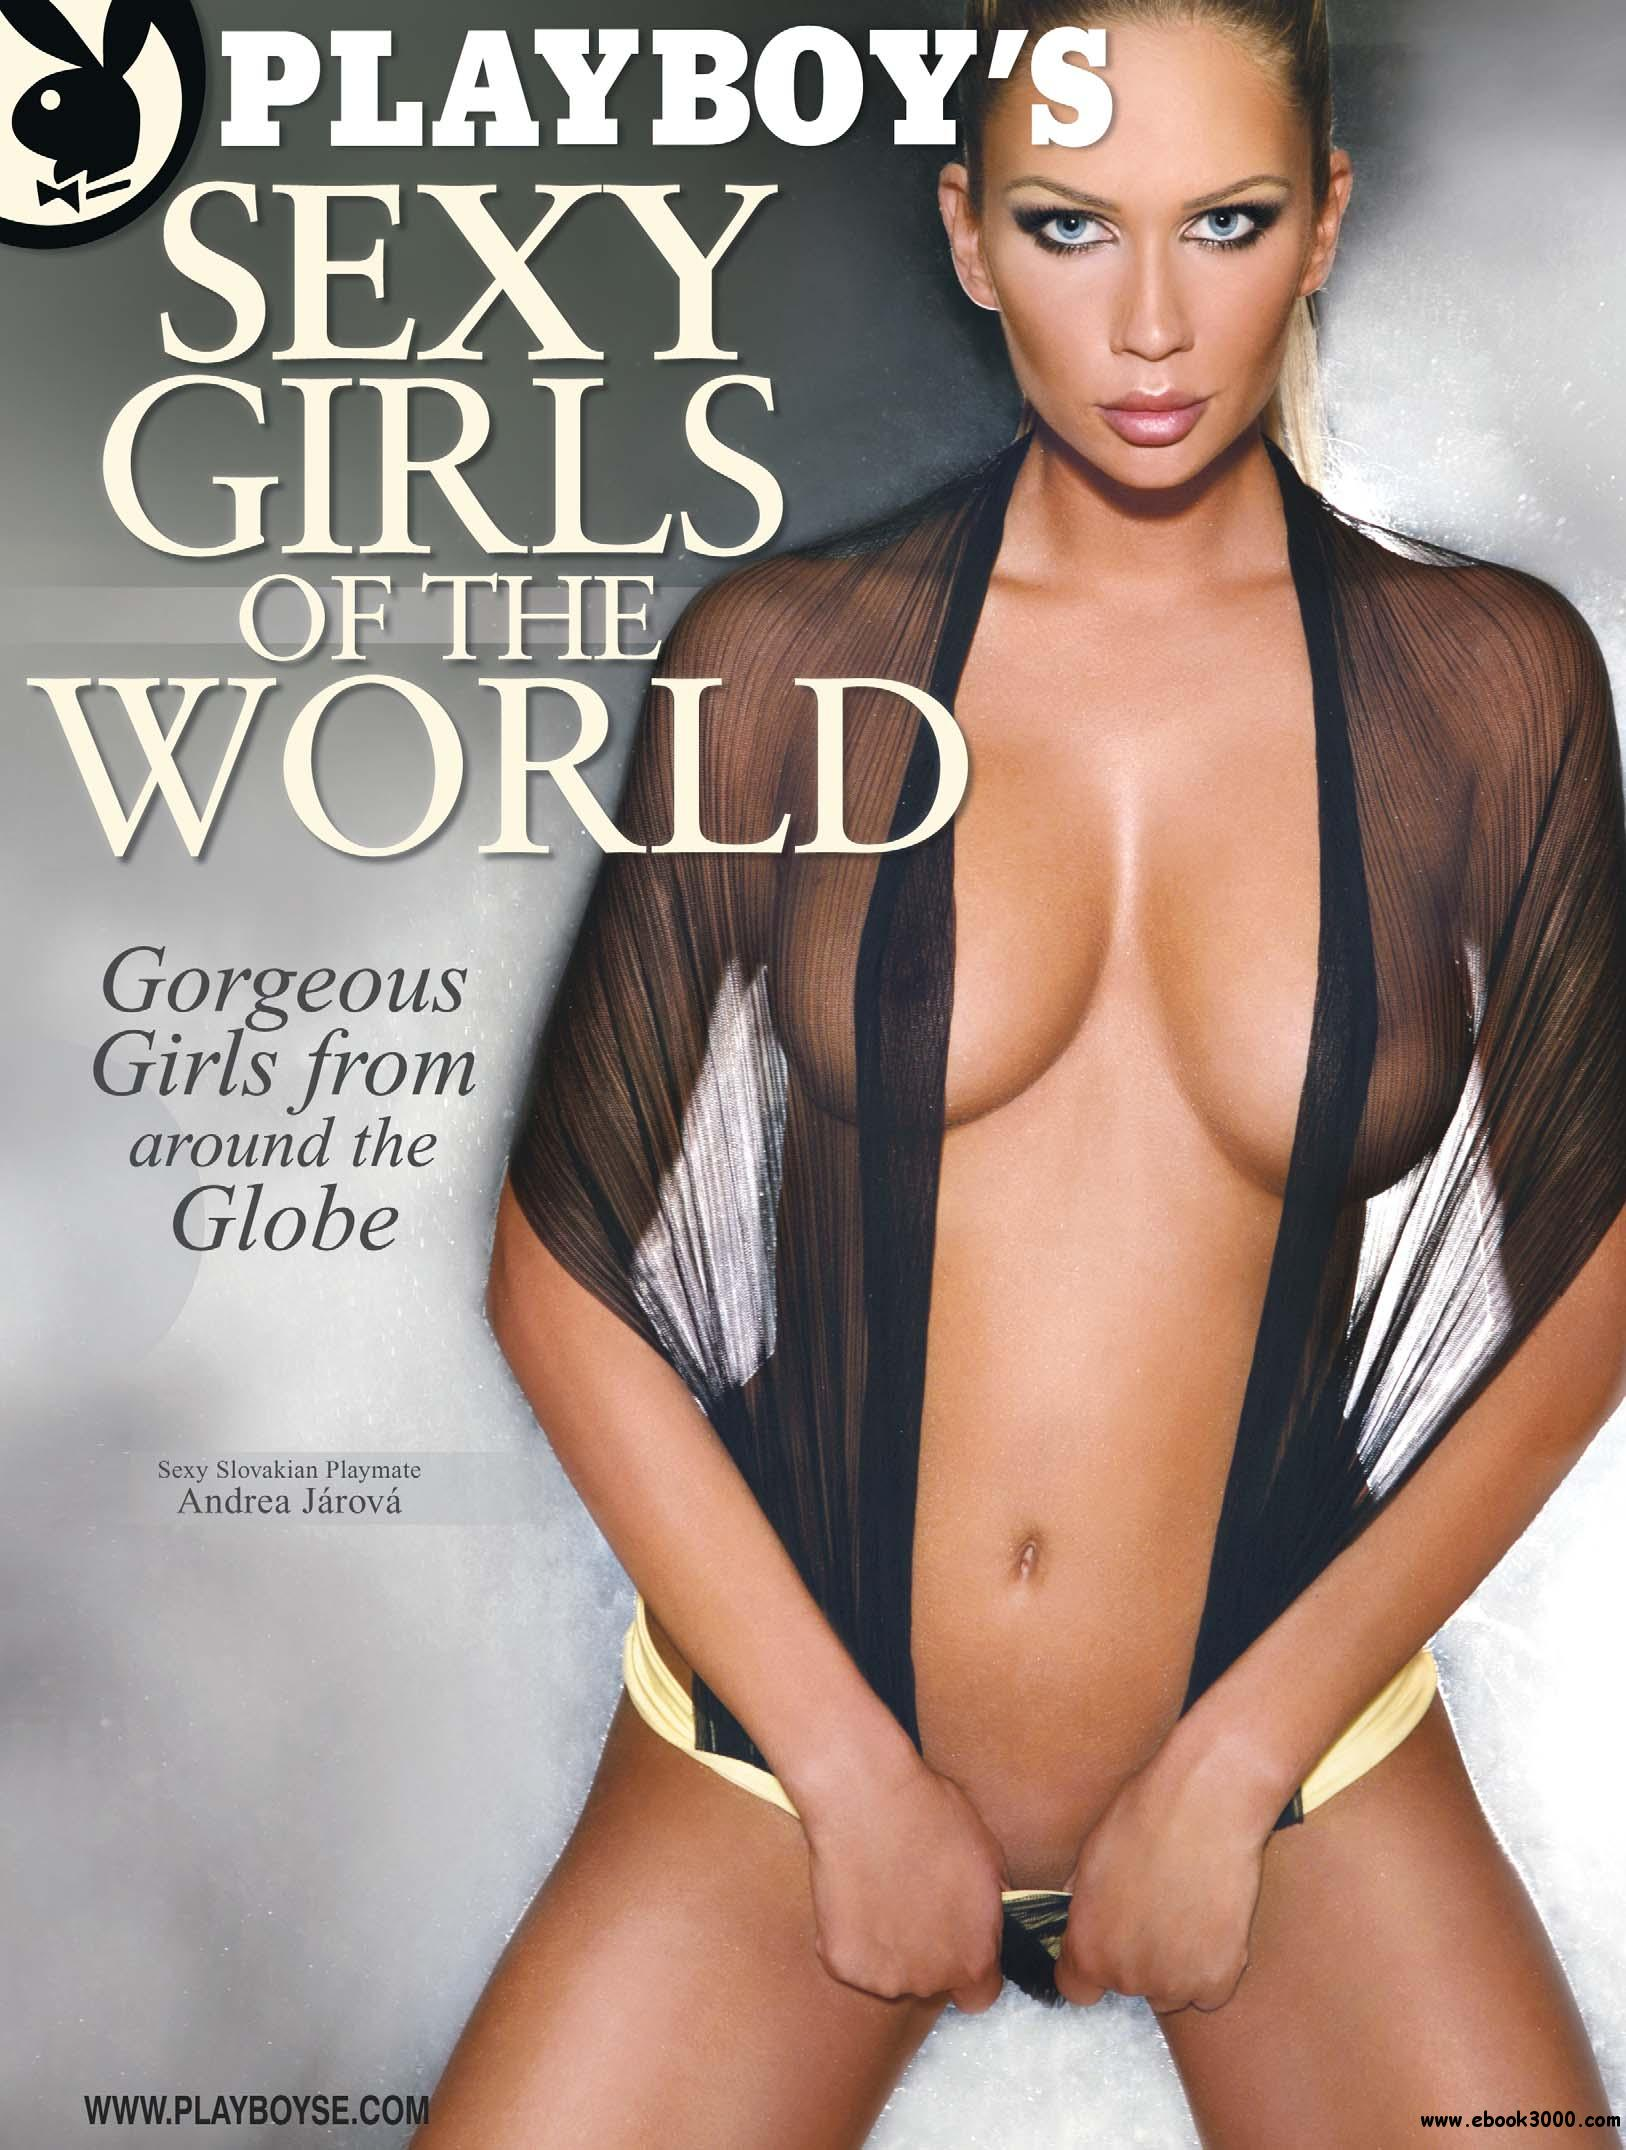 Playboy's Sexy Girls of the World 2010 free download